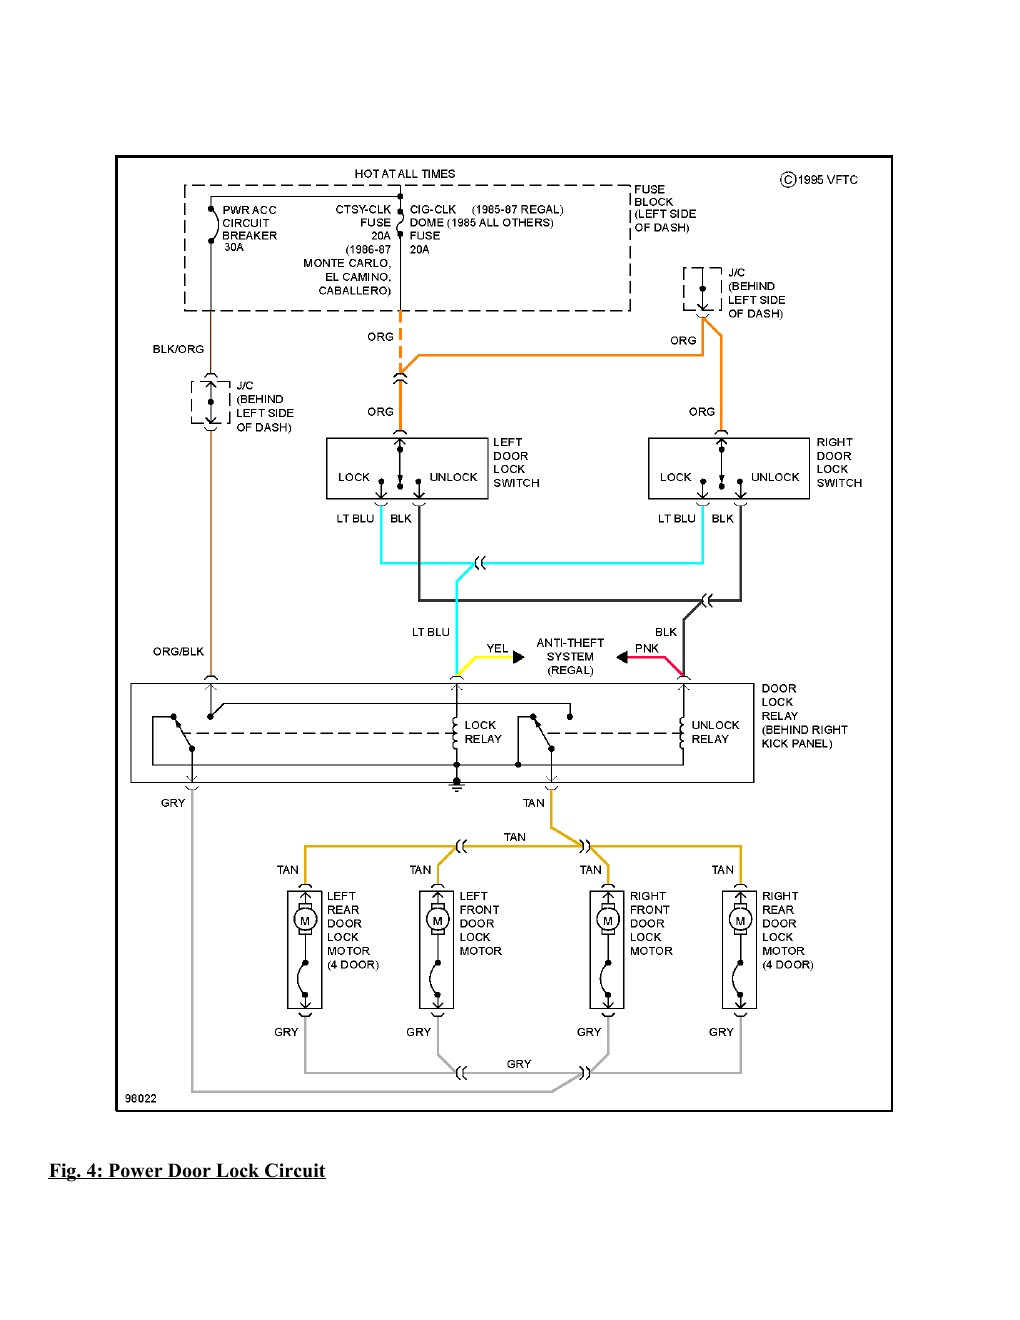 1995 Chevrolet Monte Carlo SS Complete Wiring Diagram Part